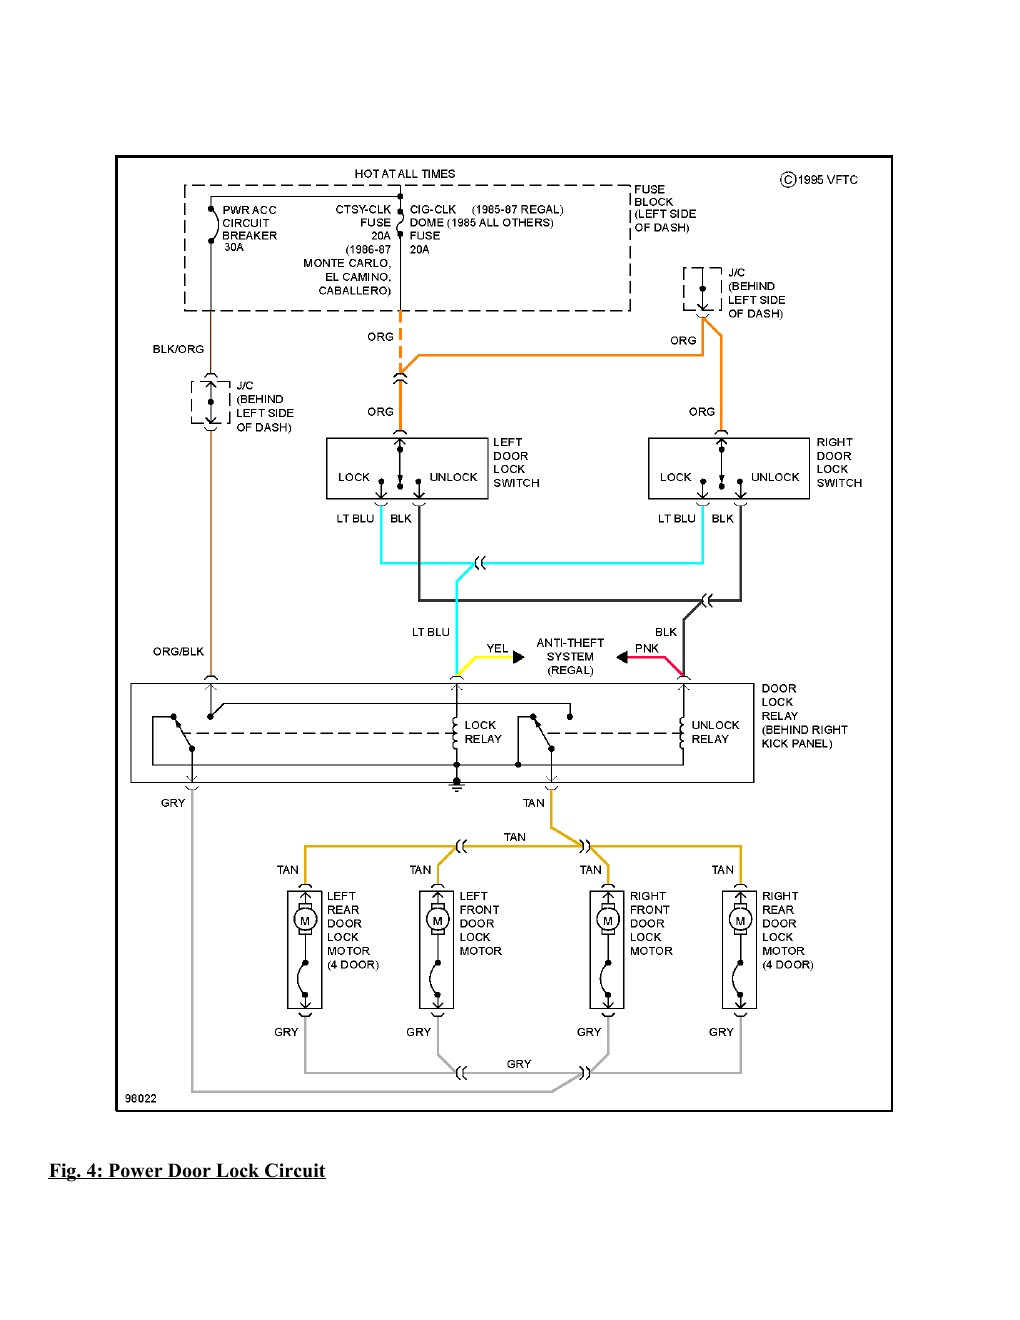 1995 Chevrolet Monte Carlo SS Complete Wiring Diagram Part